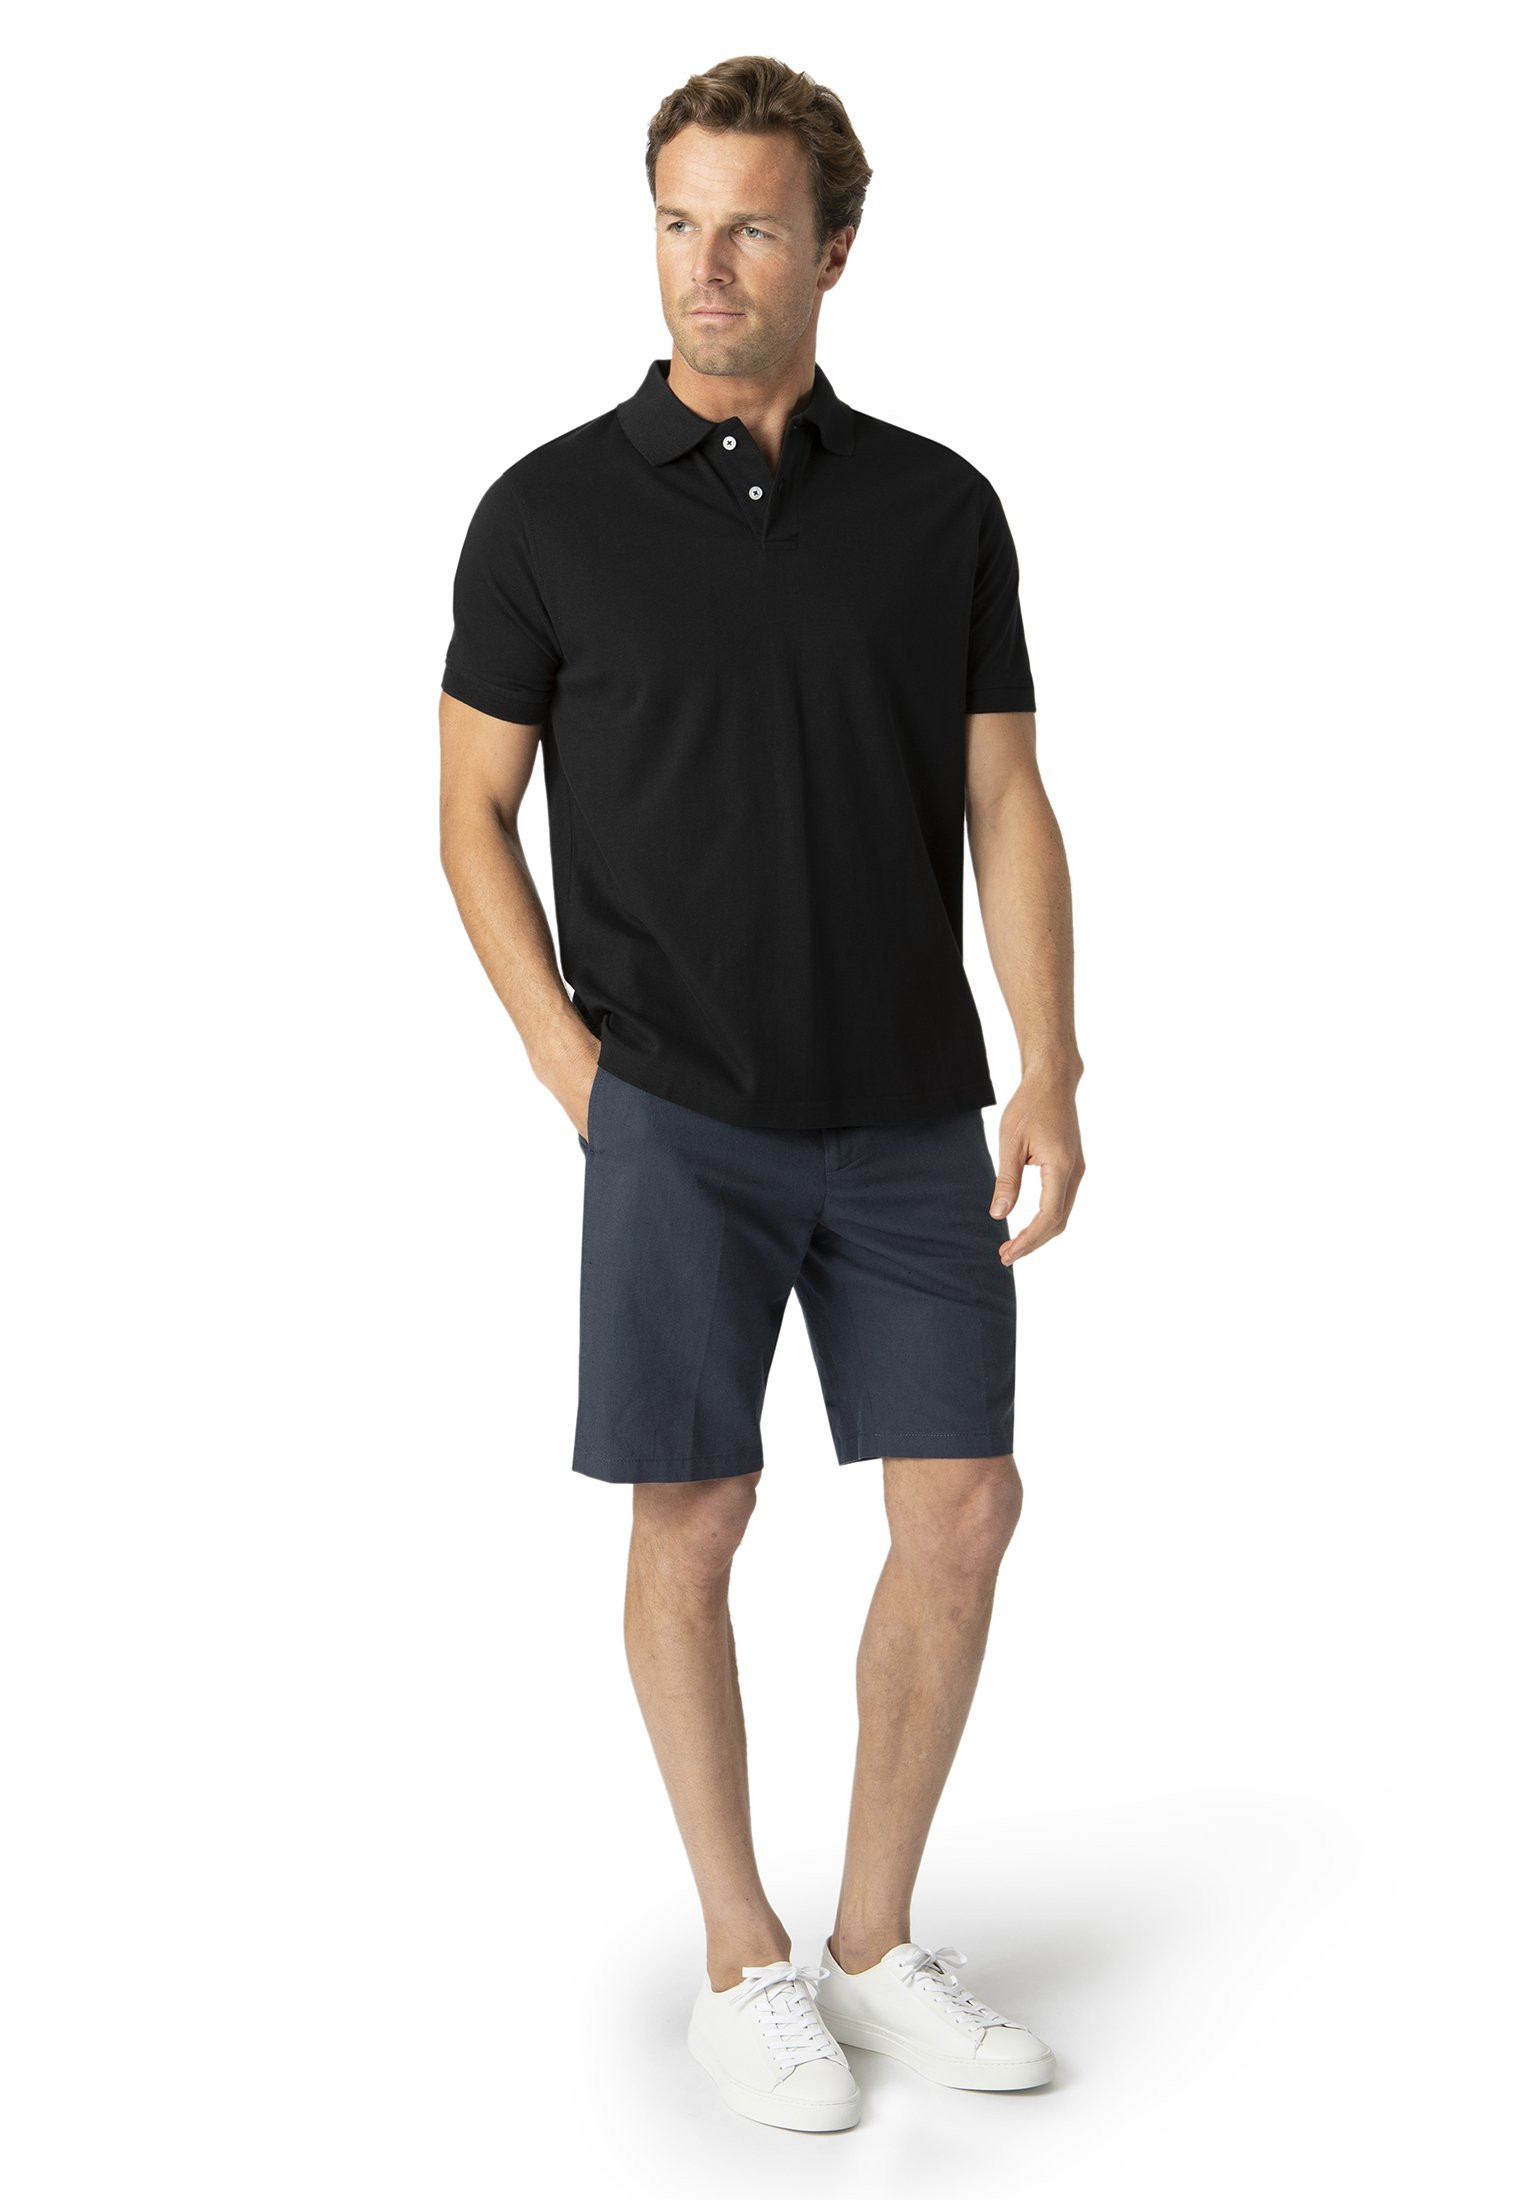 Milford Black 100% Pique Cotton Polo Shirt